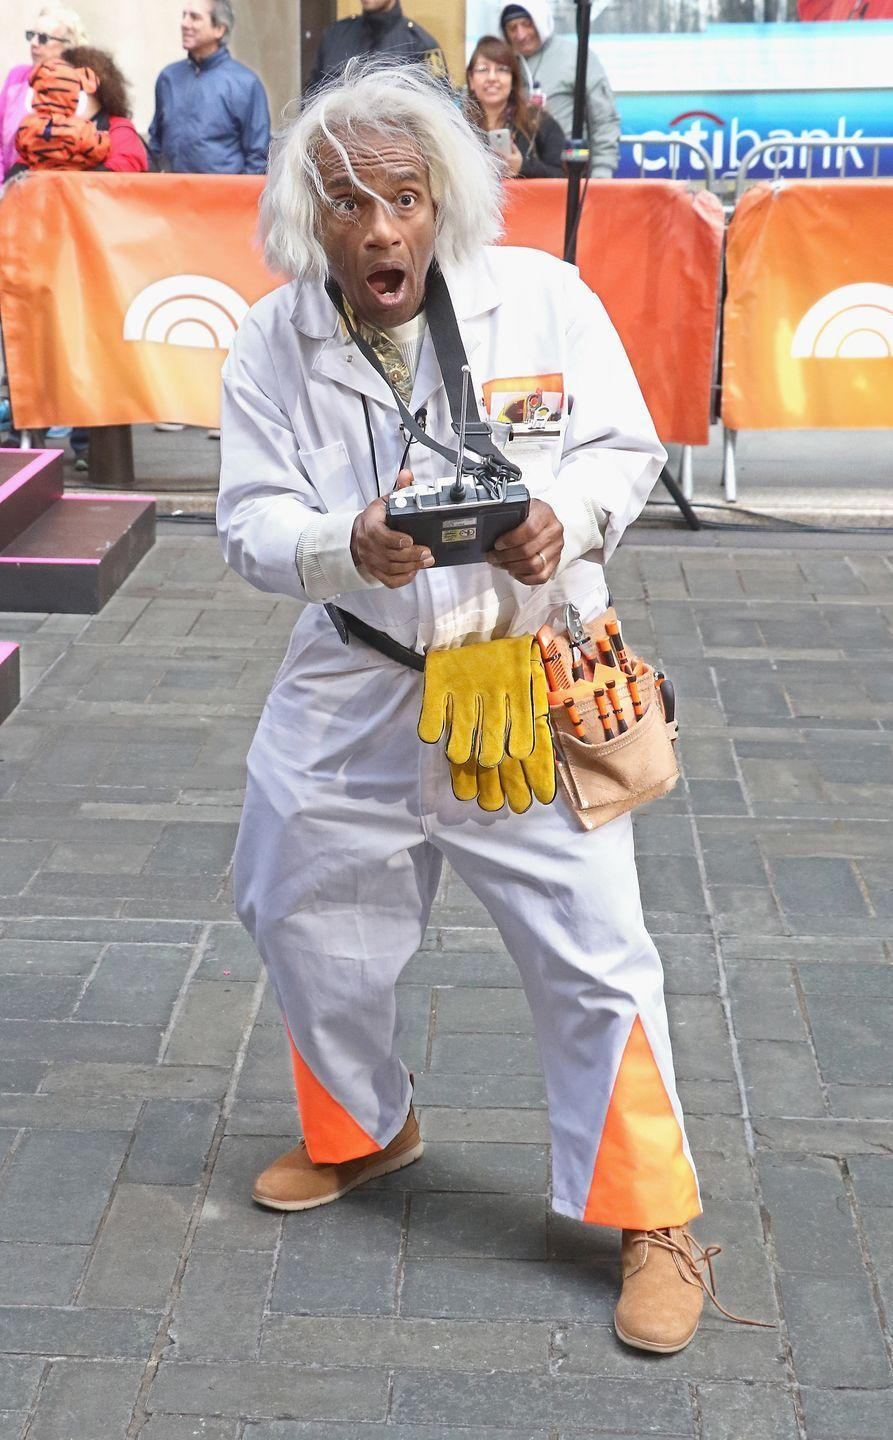 """<p>Broadcaster Al Roker attends the NBC """"Today"""" Halloween 2018 at Rockefeller Plaza on October 31, 2018 in New York City.</p>"""